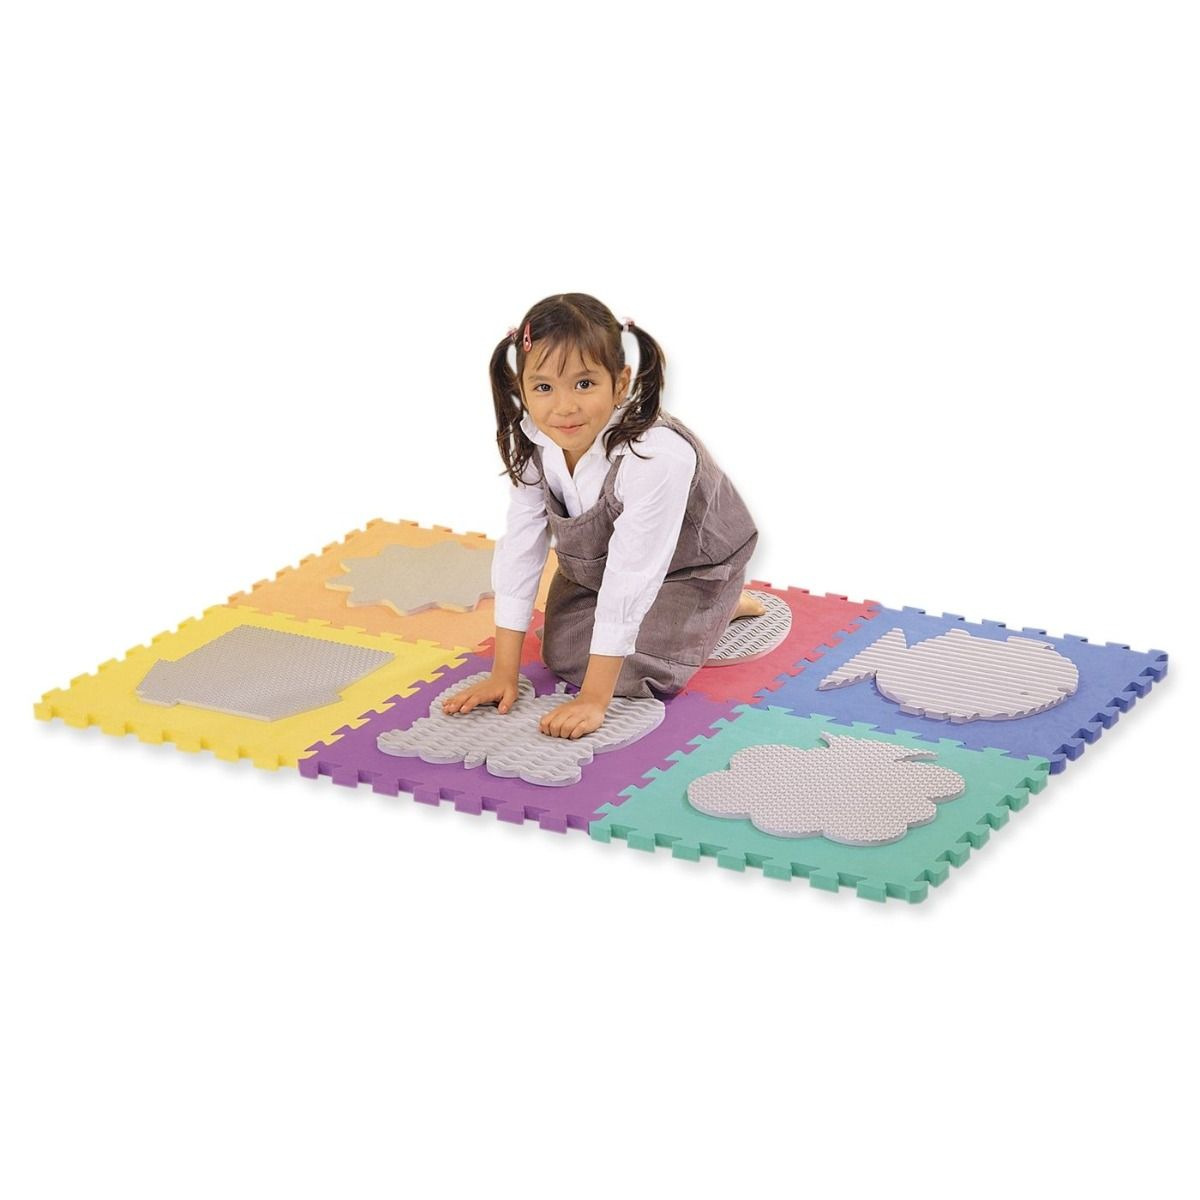 Tactile Square - set of 6 pieces